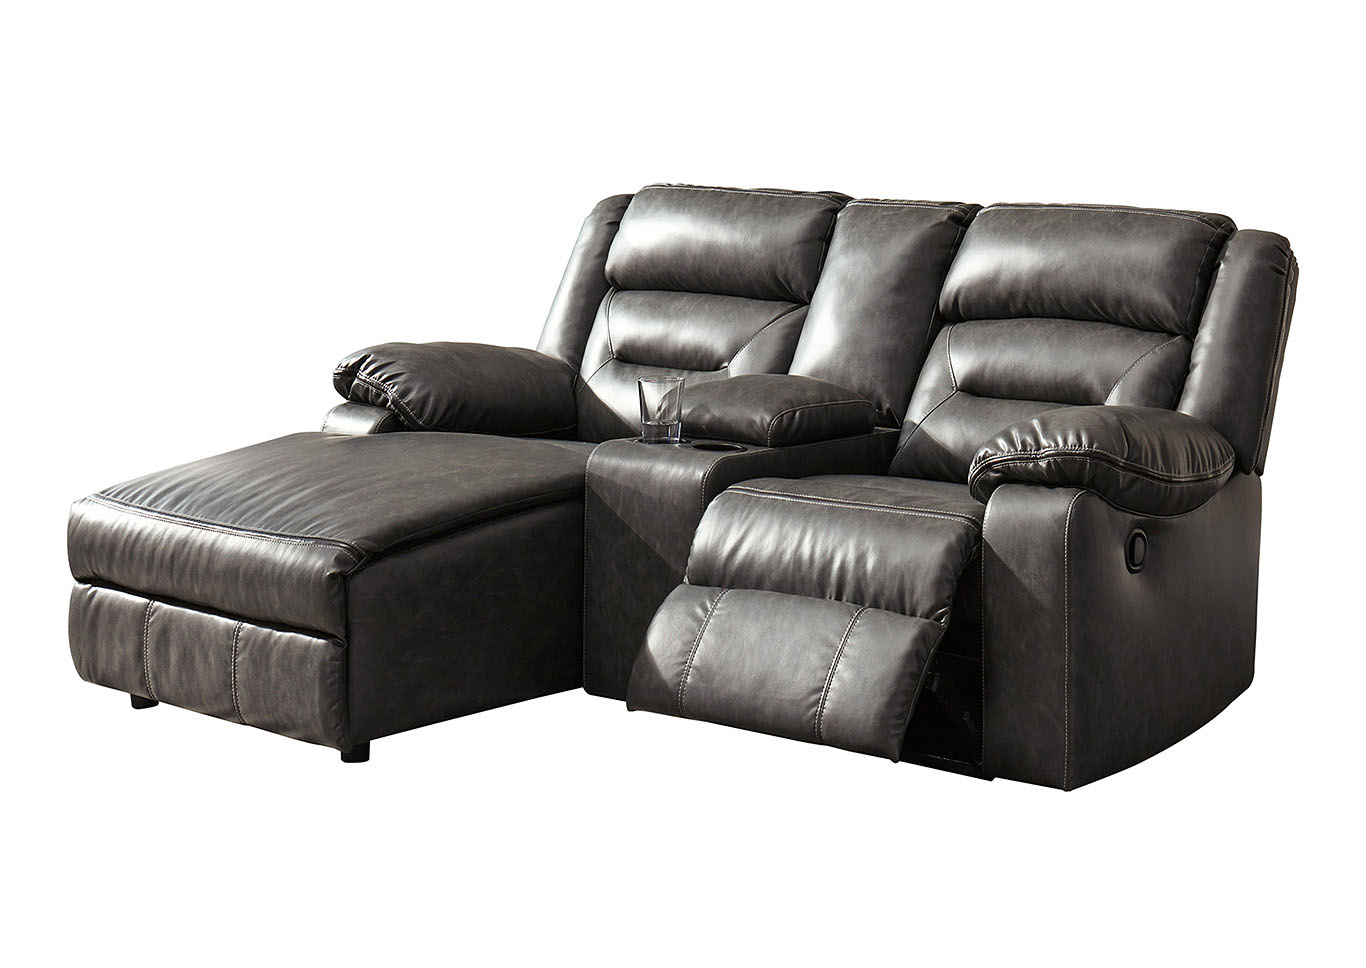 Coahoma dark gray 3 piece laf chaise sectional w console power reclinersignature